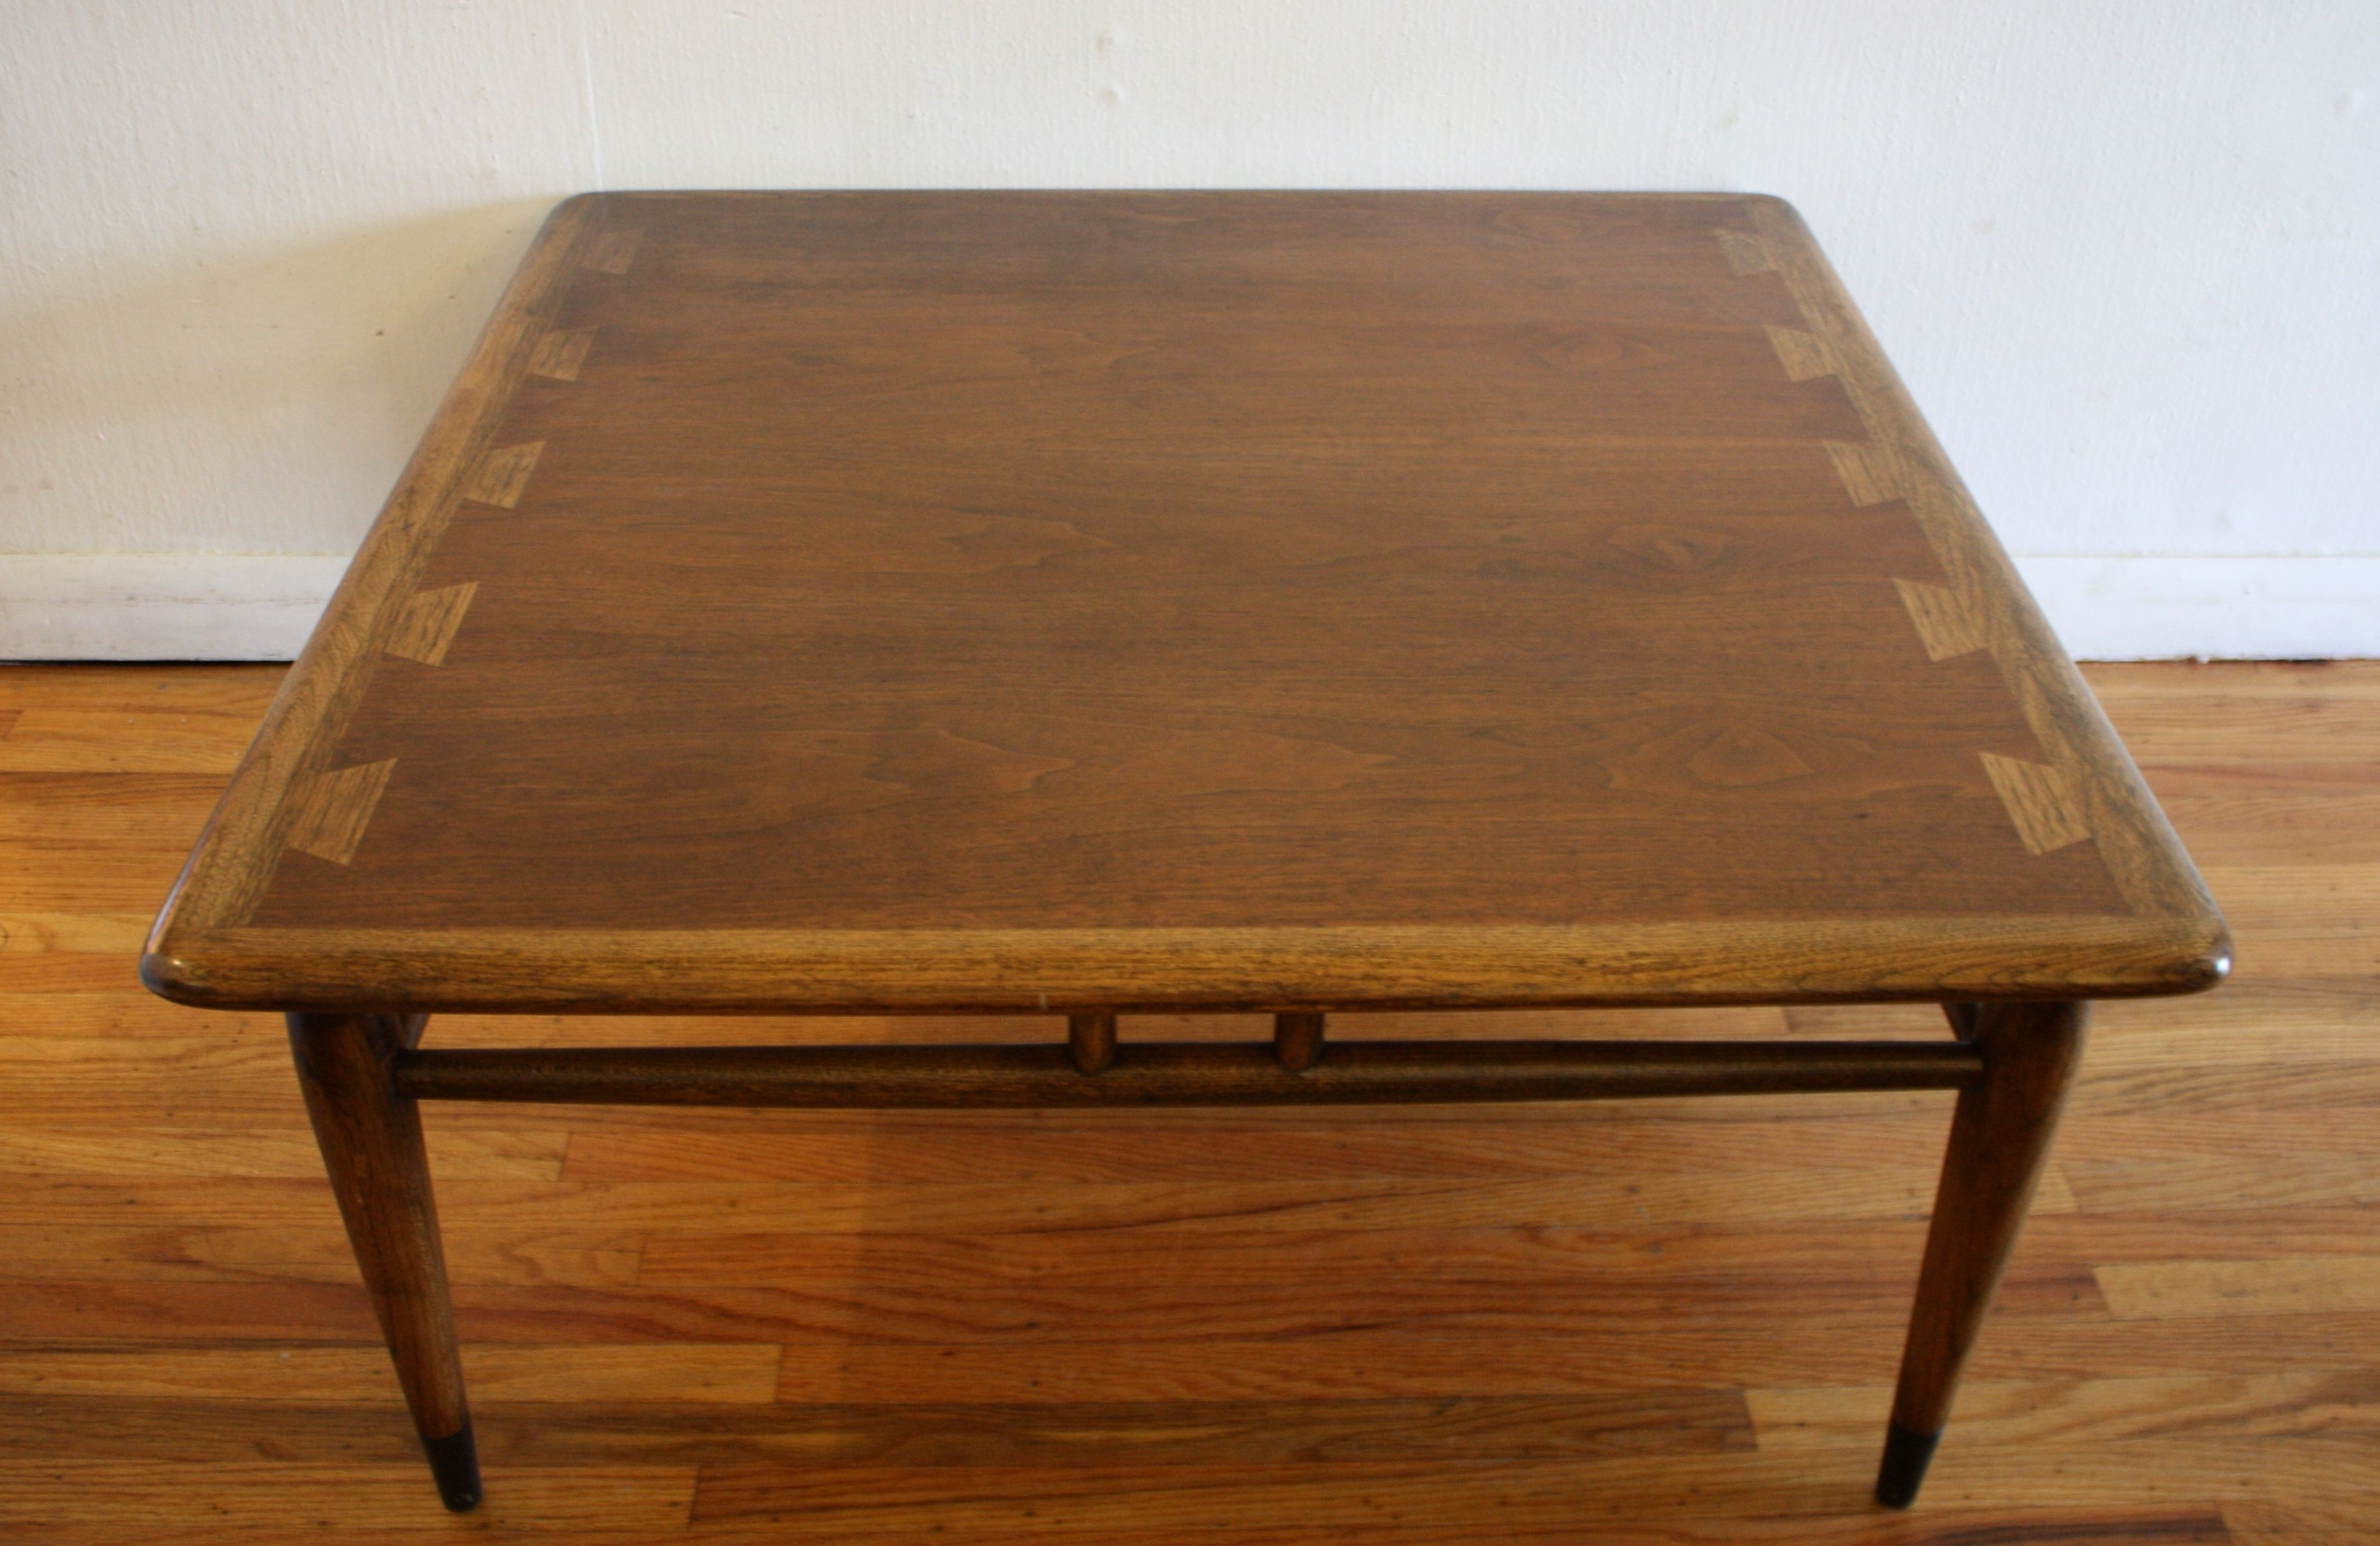 Popular Vintage Wood Coffee Tables Pertaining To Mid Century Modern Lane Acclaim Square Coffee Table Ked Vintage (View 11 of 20)